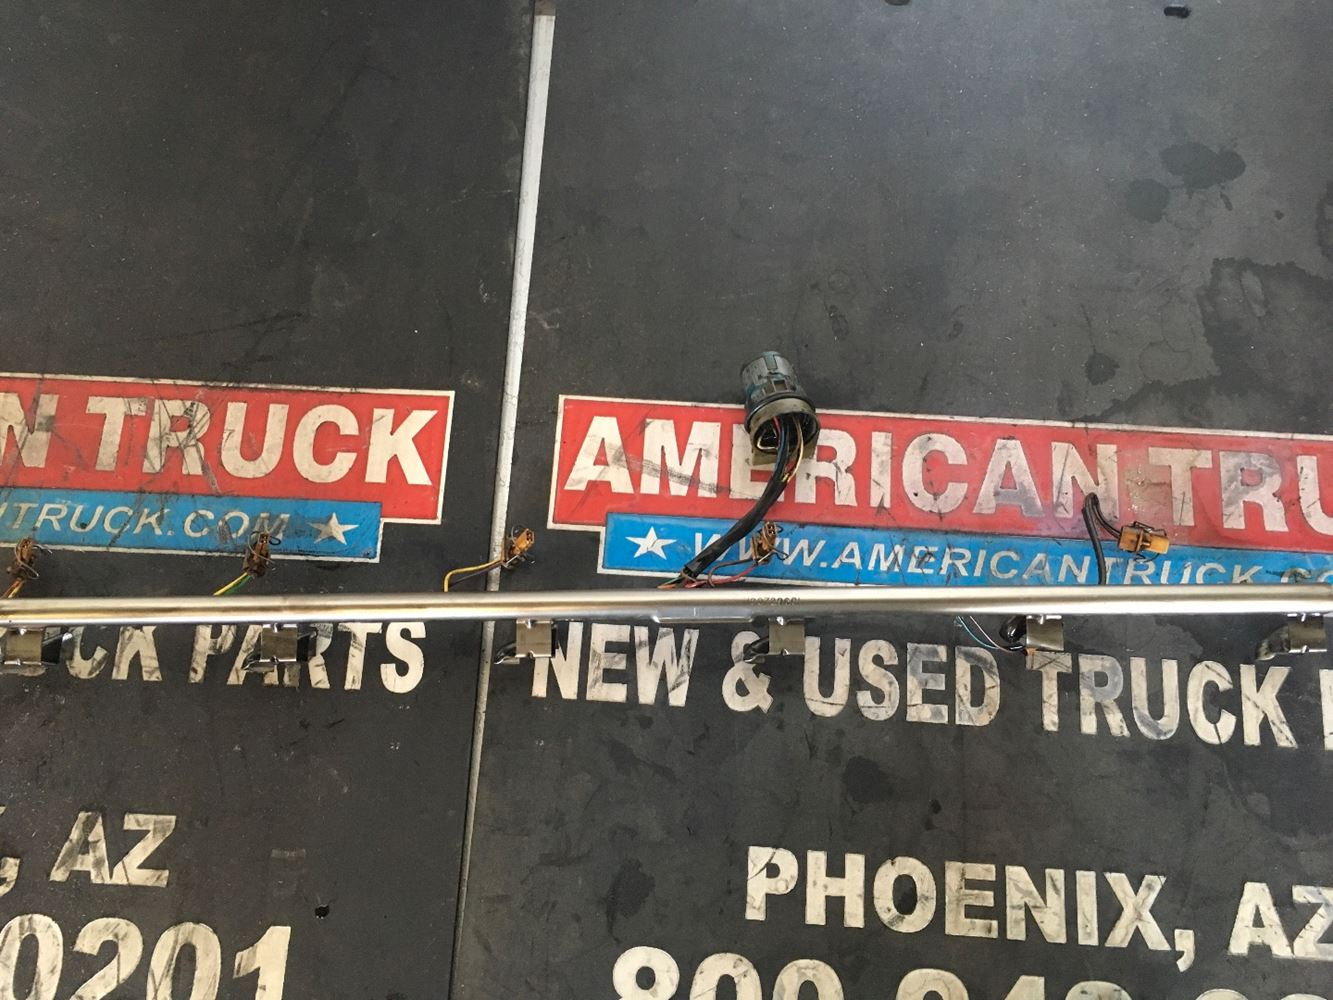 International DT466E Engine Misc Parts czym3L0mbc73_f?h=60&w=100&crop=auto engine misc parts new and used parts american truck chrome